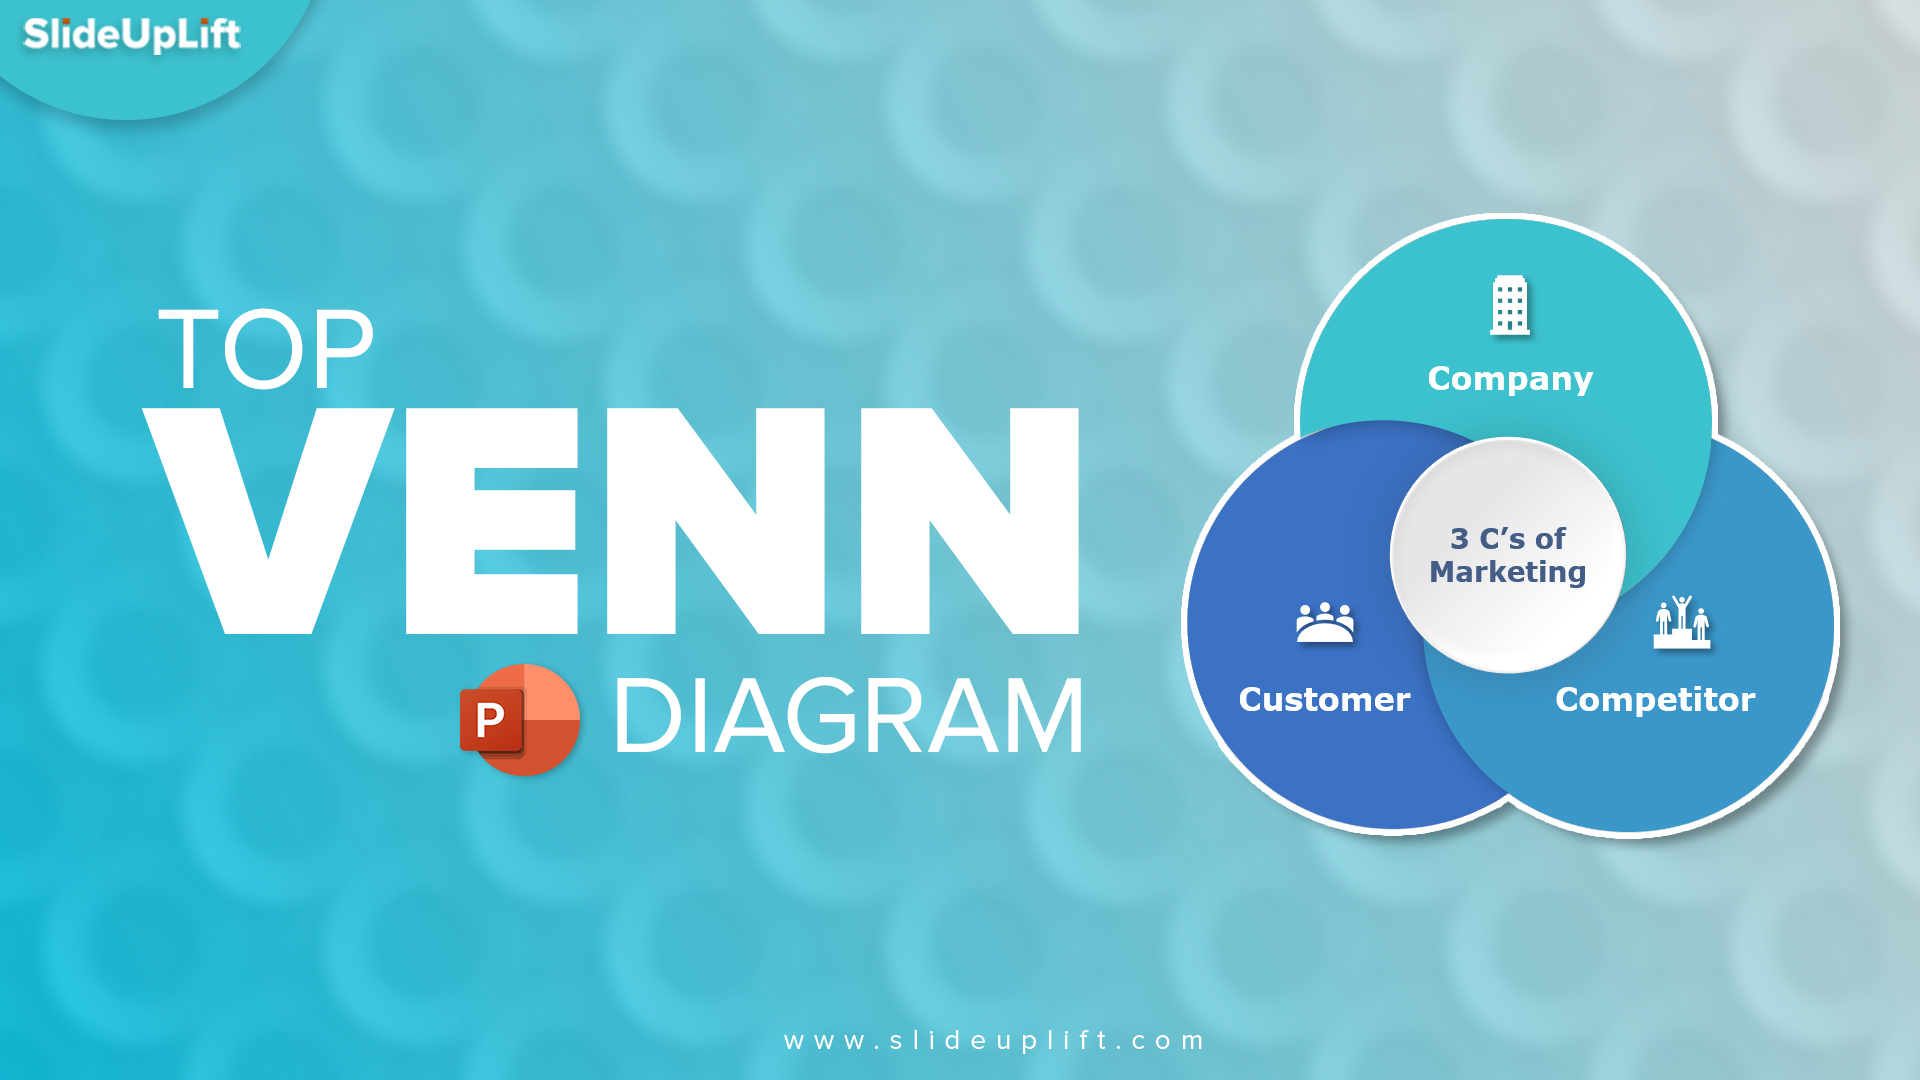 Learn All About Venn Diagrams, Top Examples of Venn Diagram Templates for PowerPoint & Get Free Venn Diagram PowerPoint